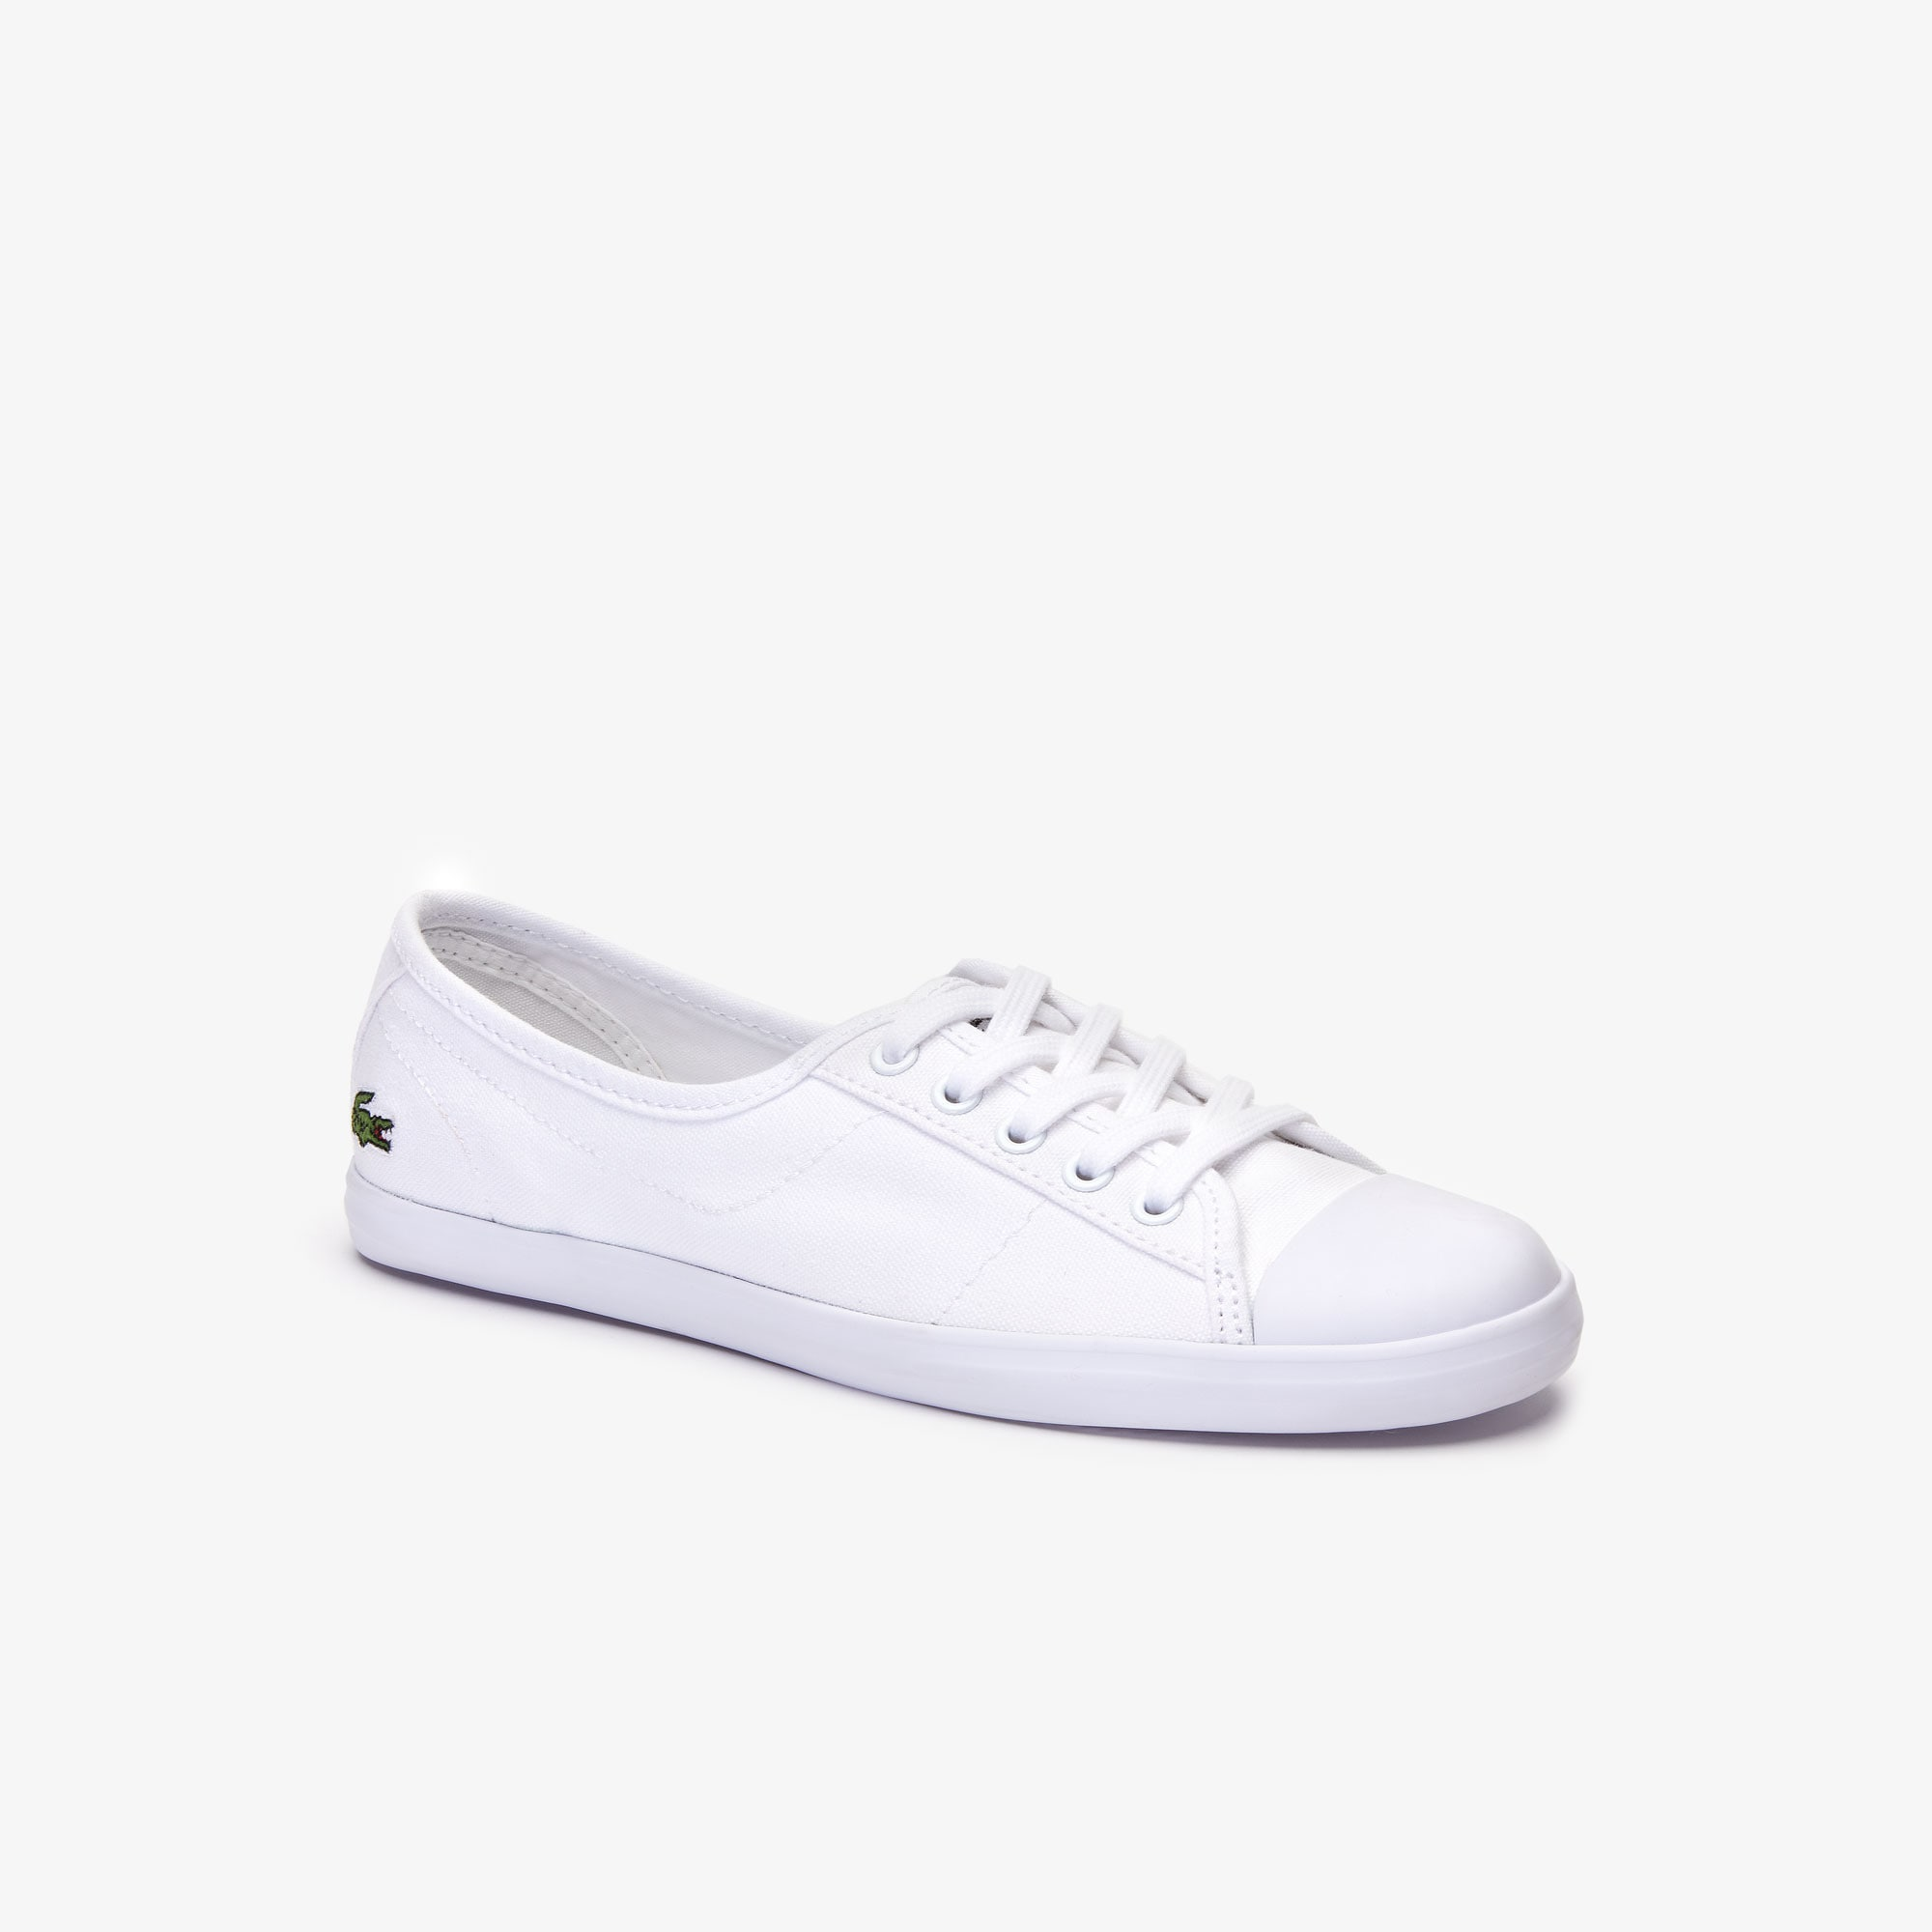 Women's Ziane Canvas Sneakers